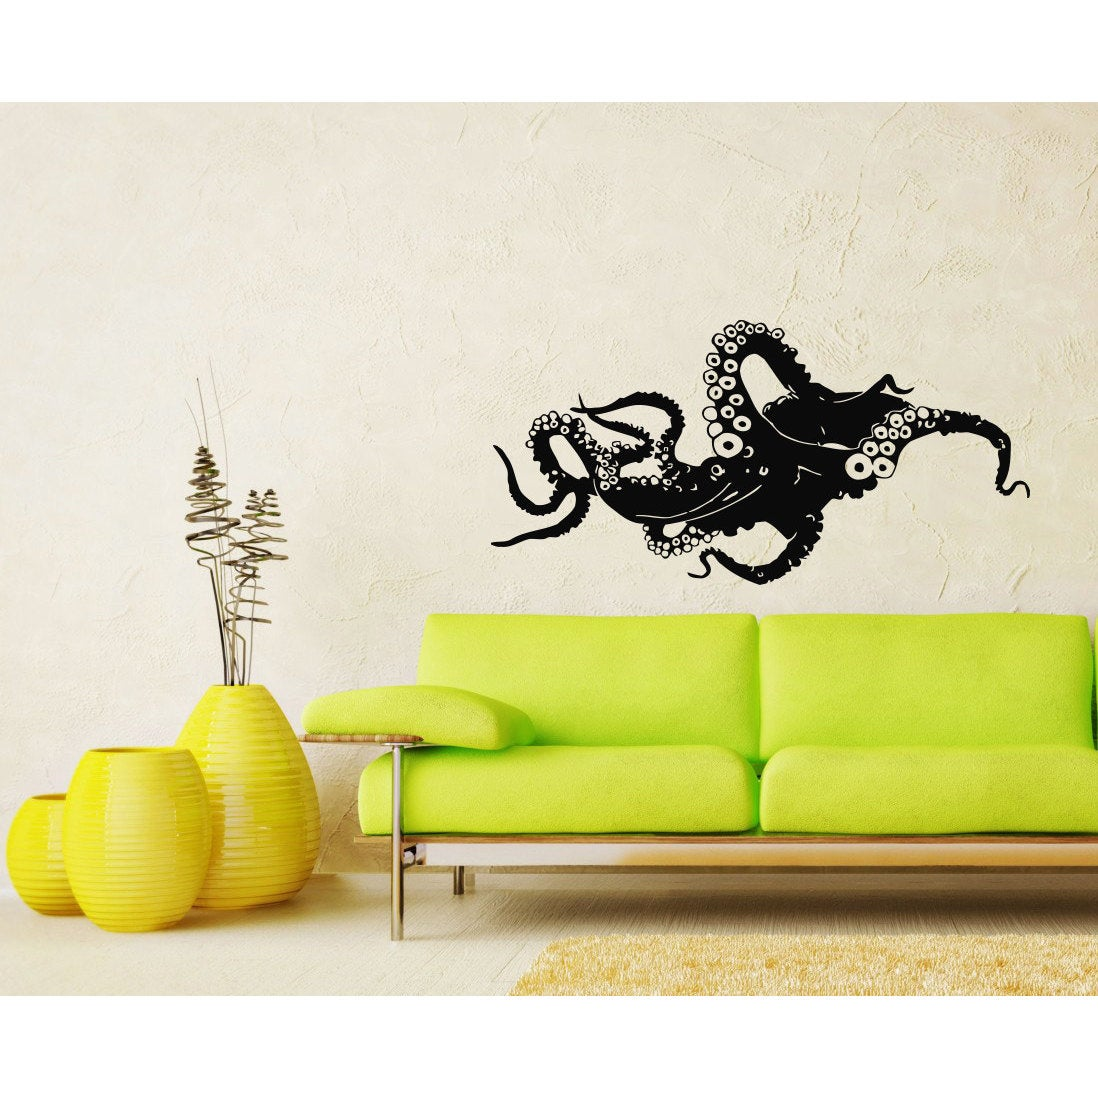 Octopus Vinyl Sticker Wall Art - Free Shipping On Orders Over $45 ...